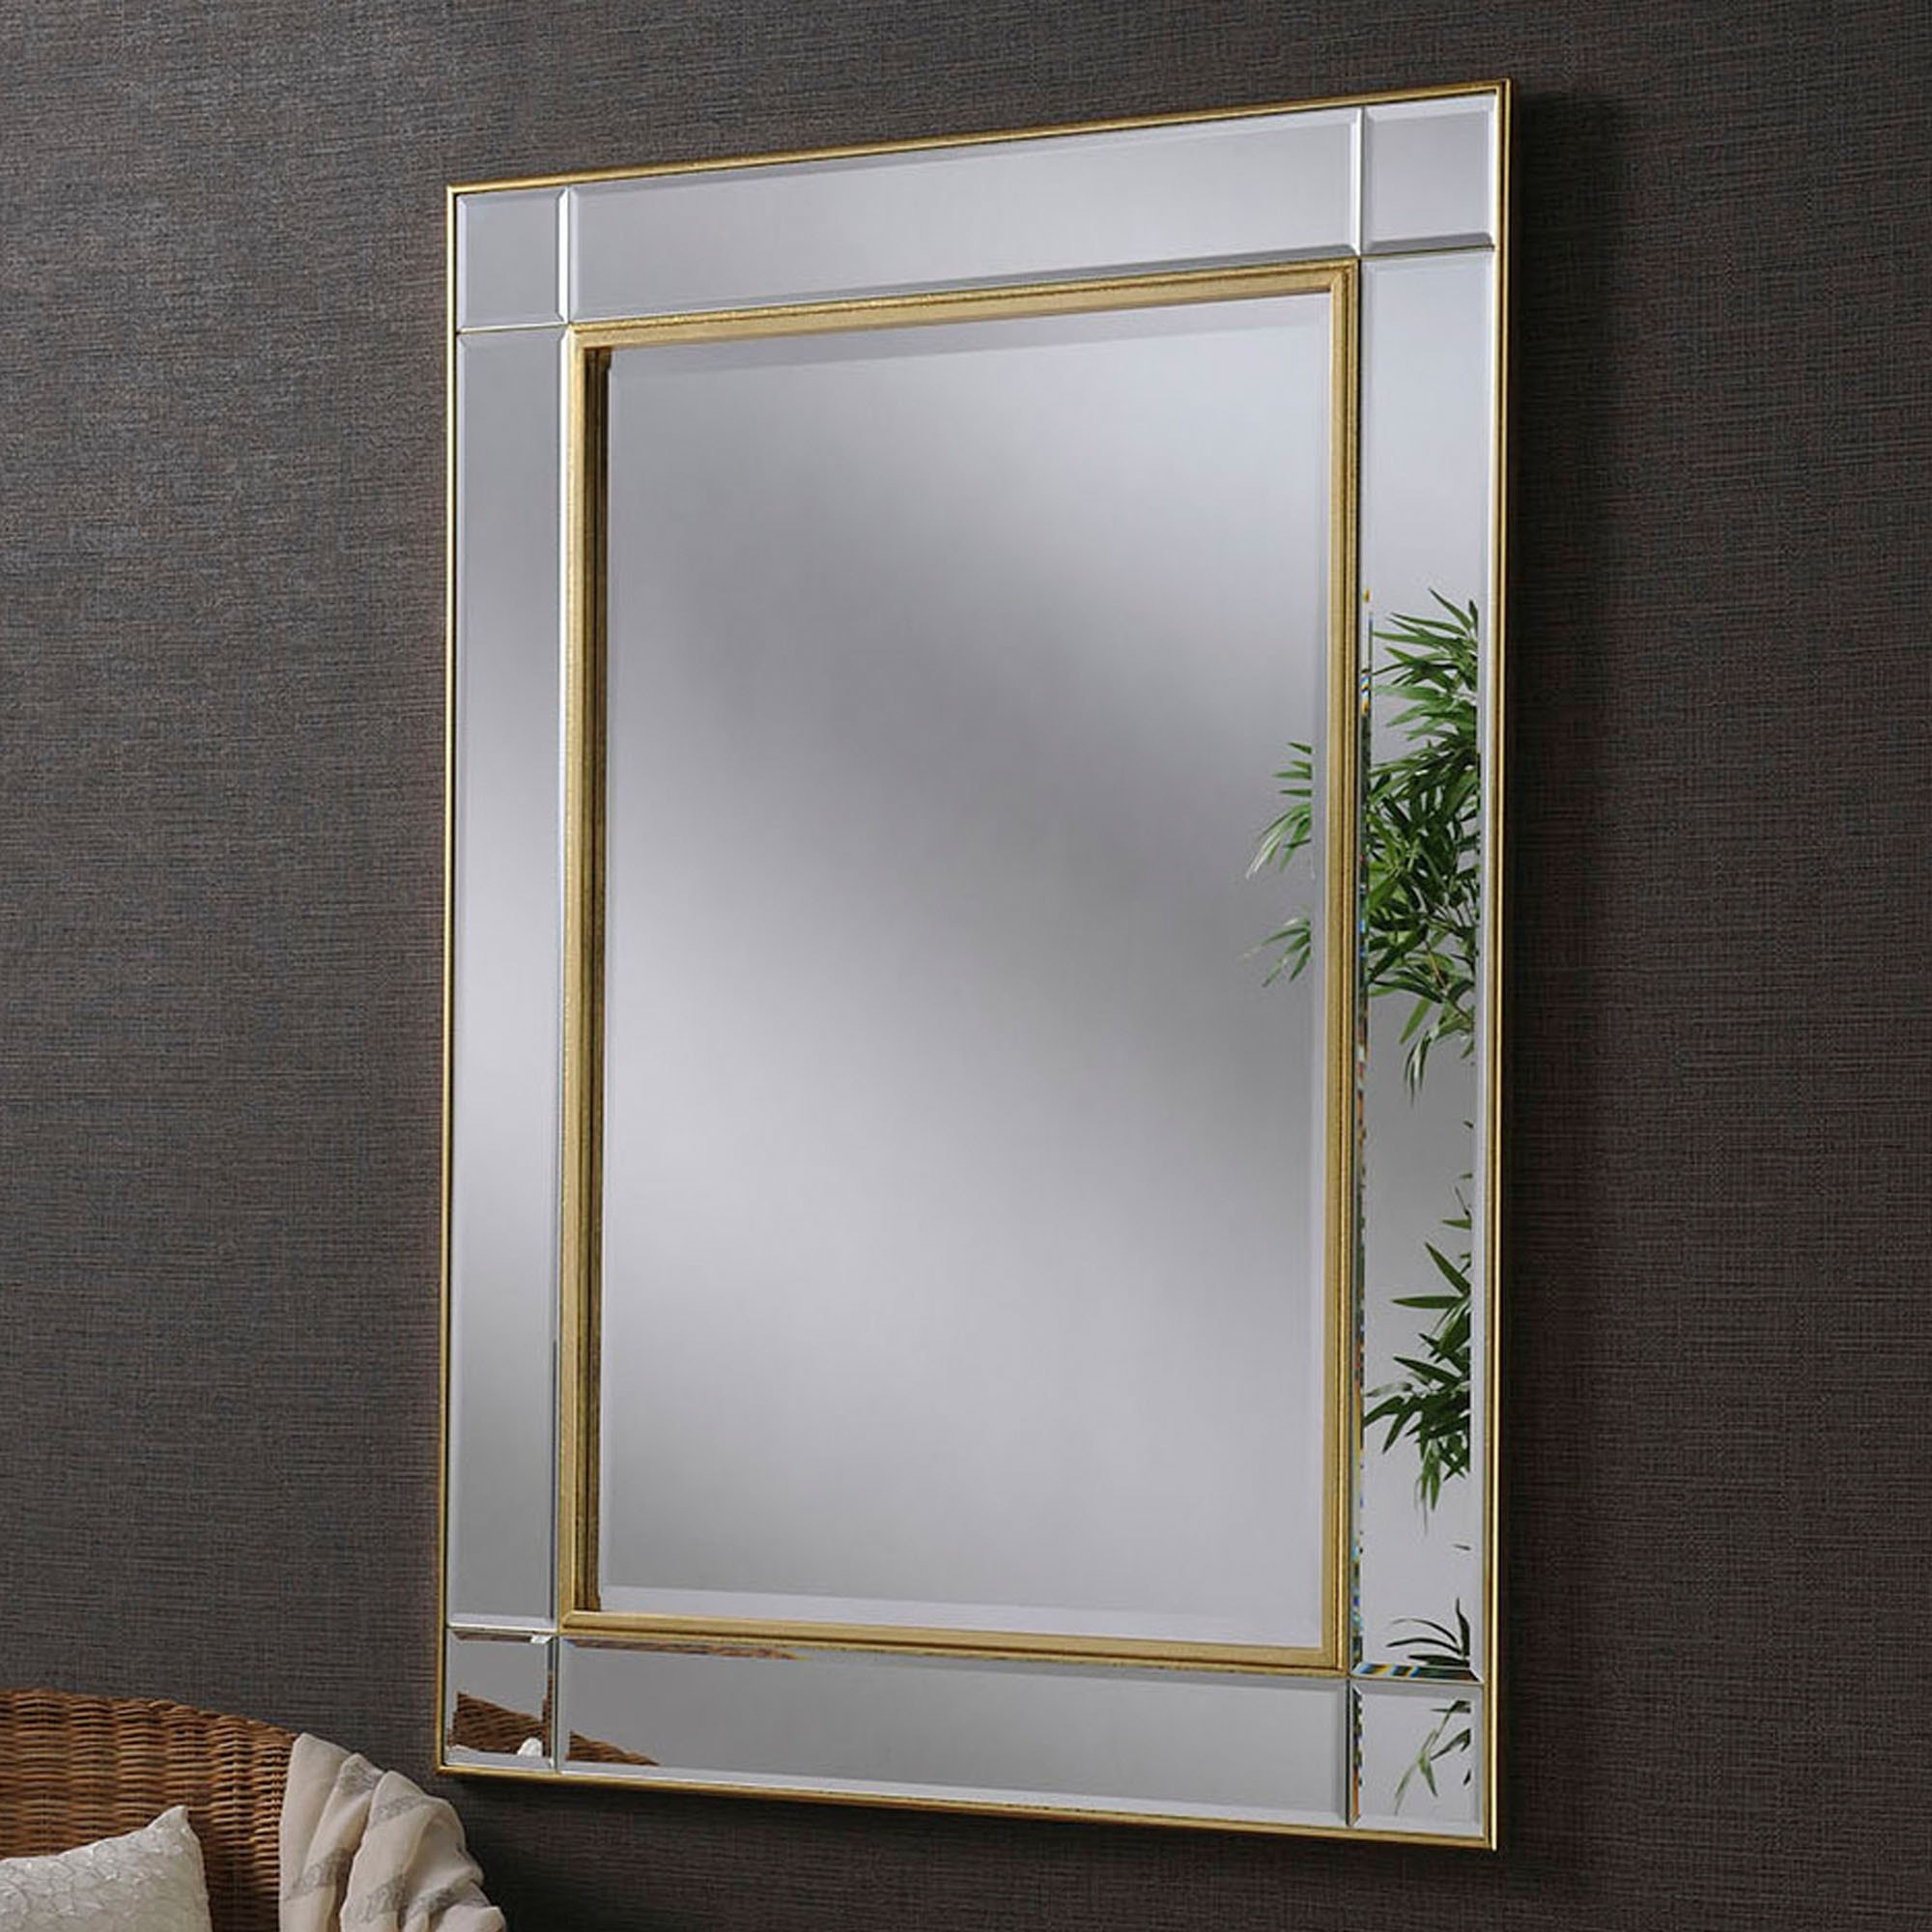 Well Liked Beveled Wall Mirrors Pertaining To Contemporary Gold Beveled Wall Mirror (View 2 of 20)